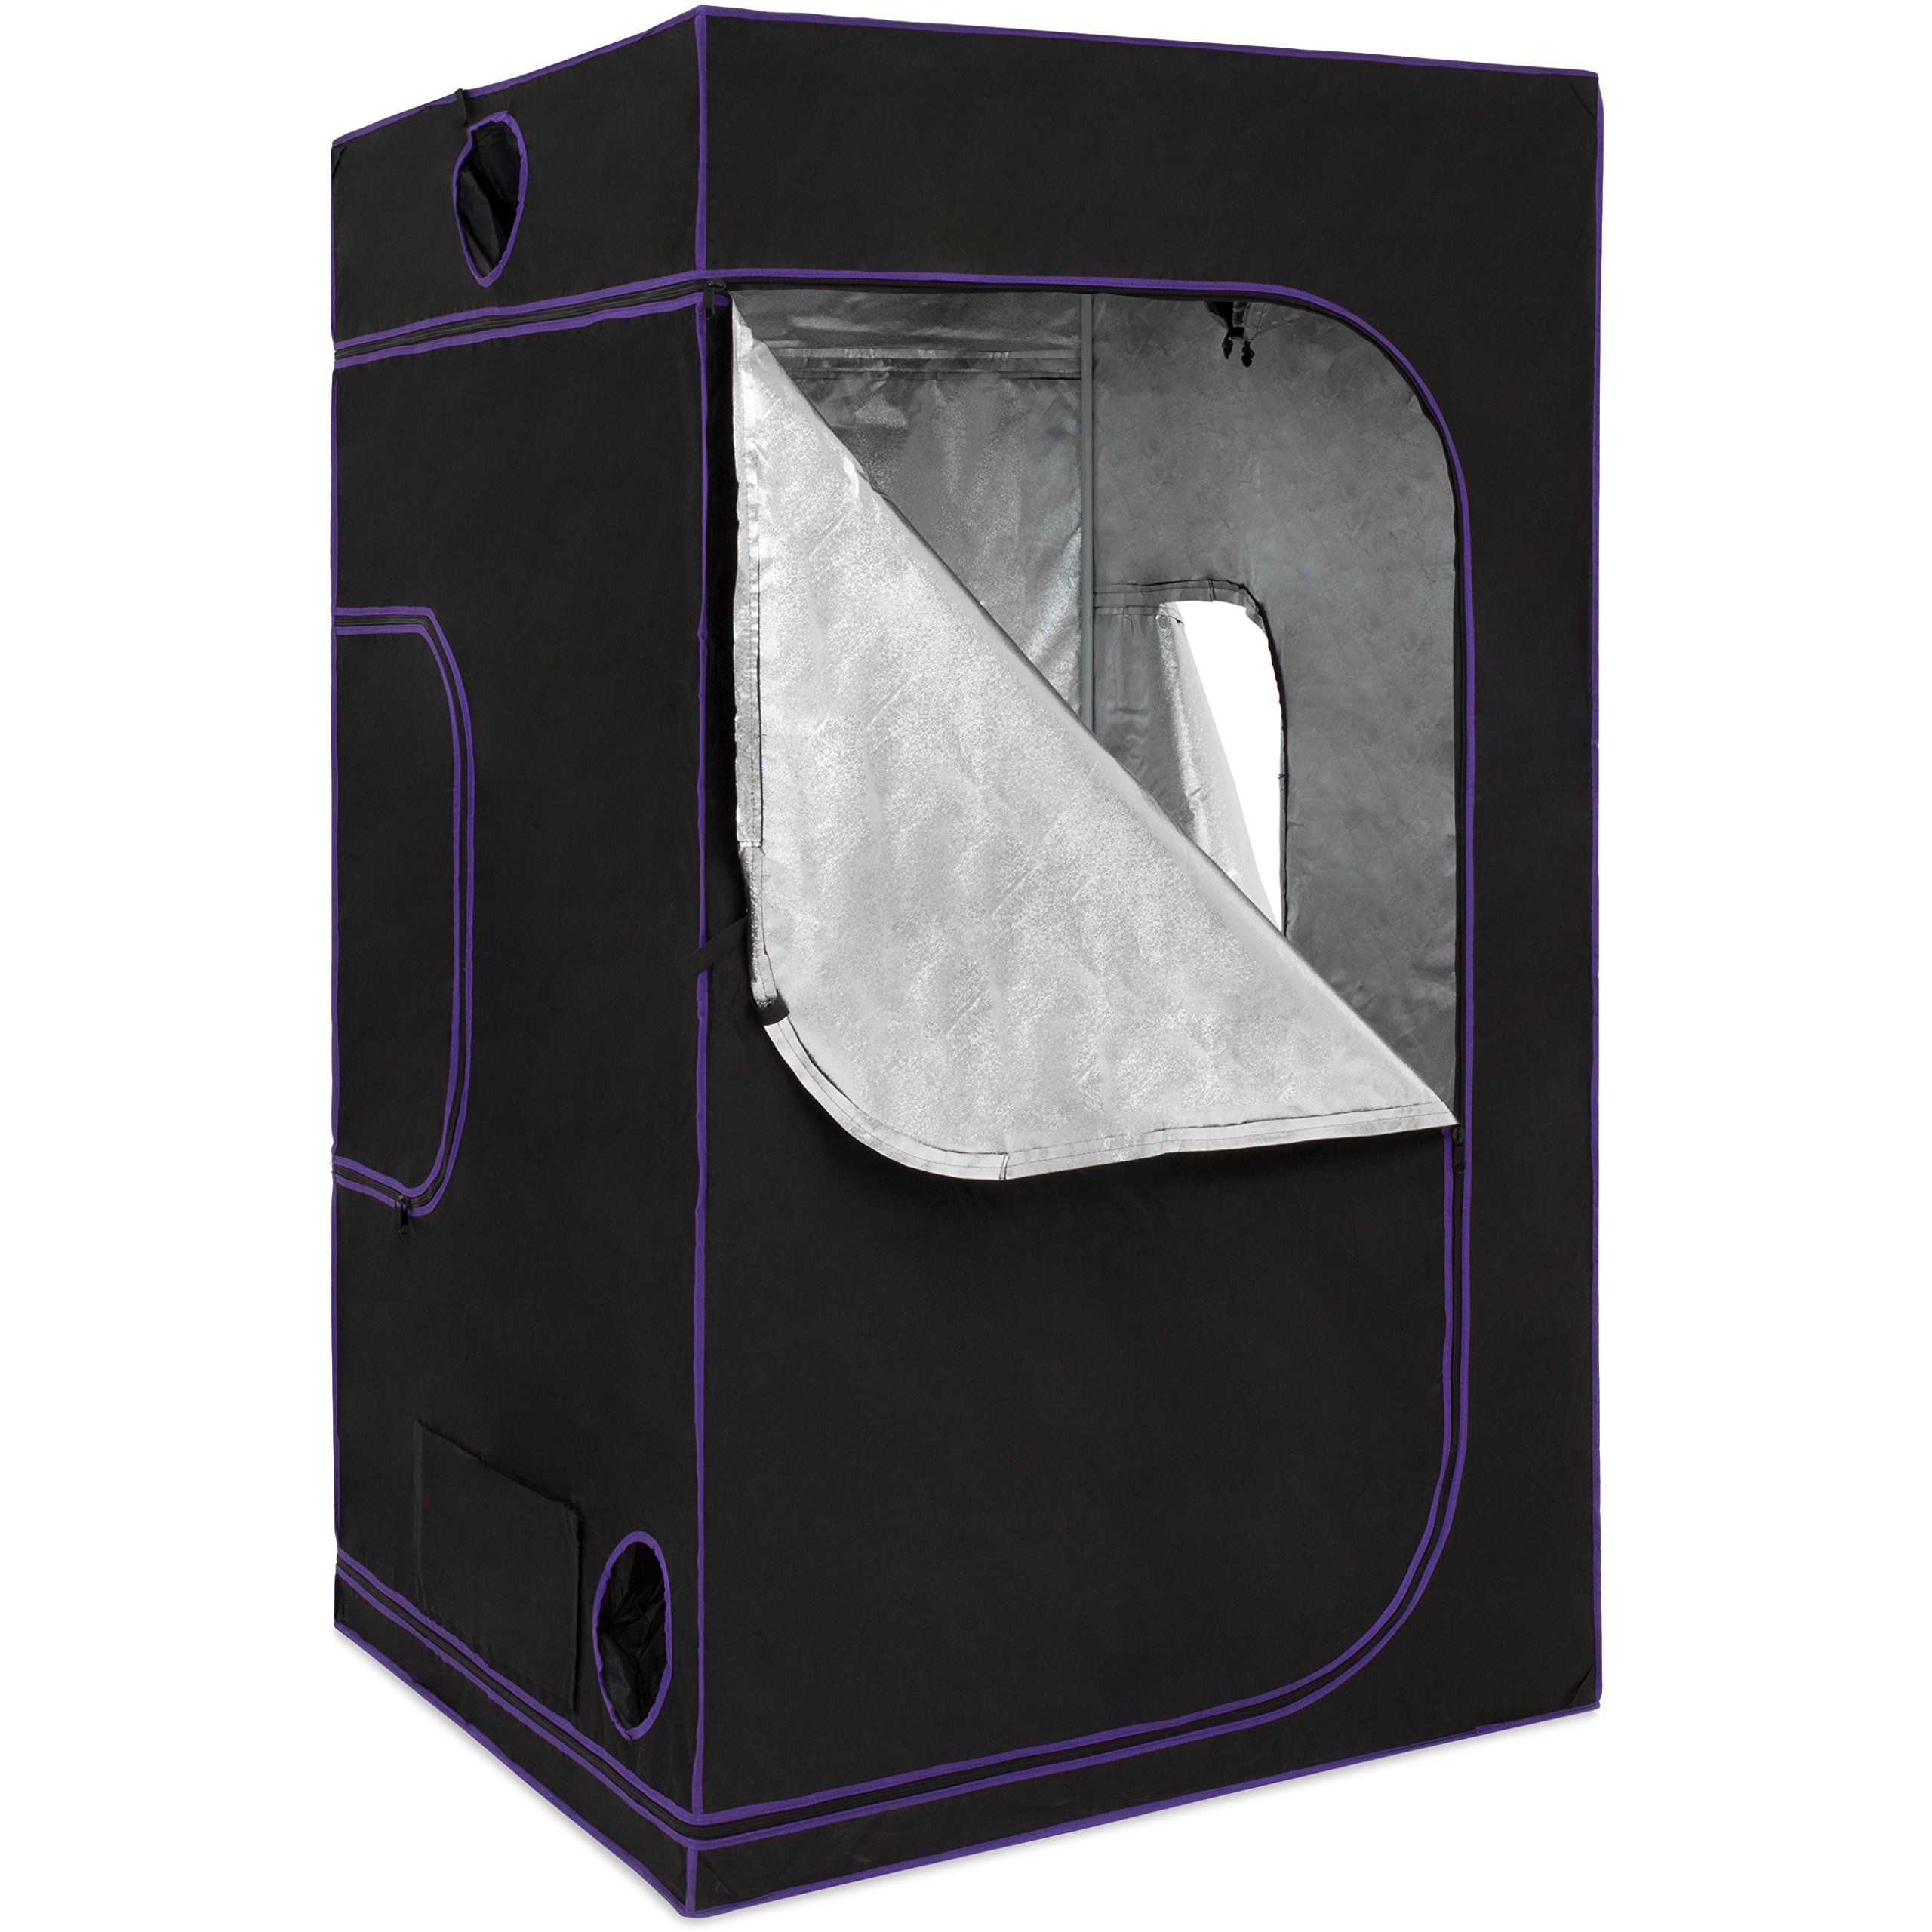 Best Choice Products 48x48xX80in Heavy Duty Indoor Hydroponic Grow Tent w/Observation Window -Black